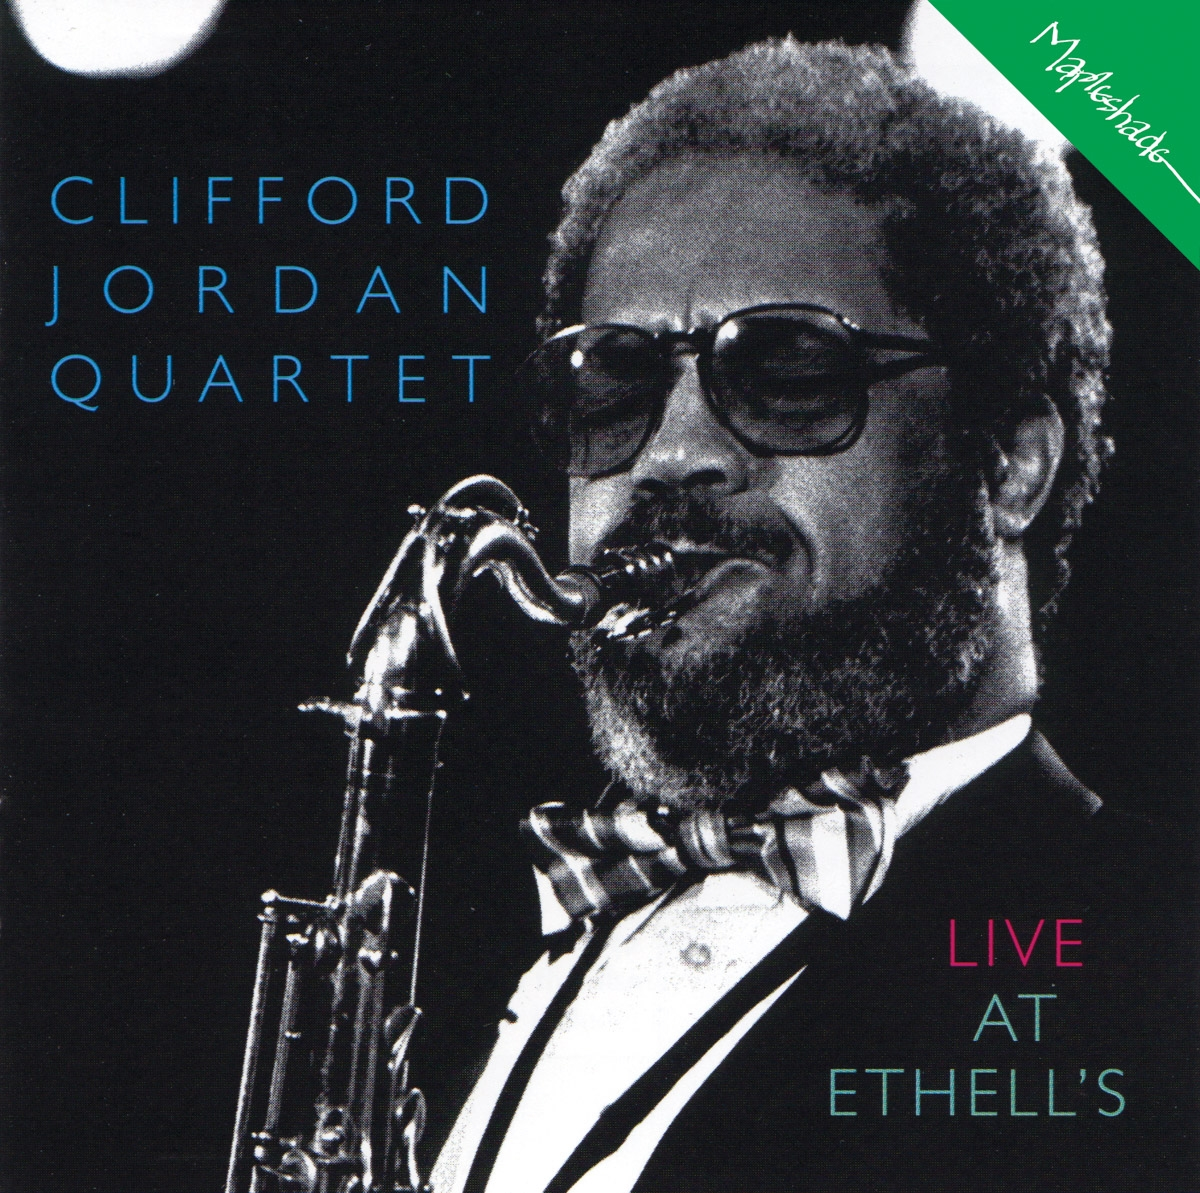 Clifford Jordan: Live At Ethell's